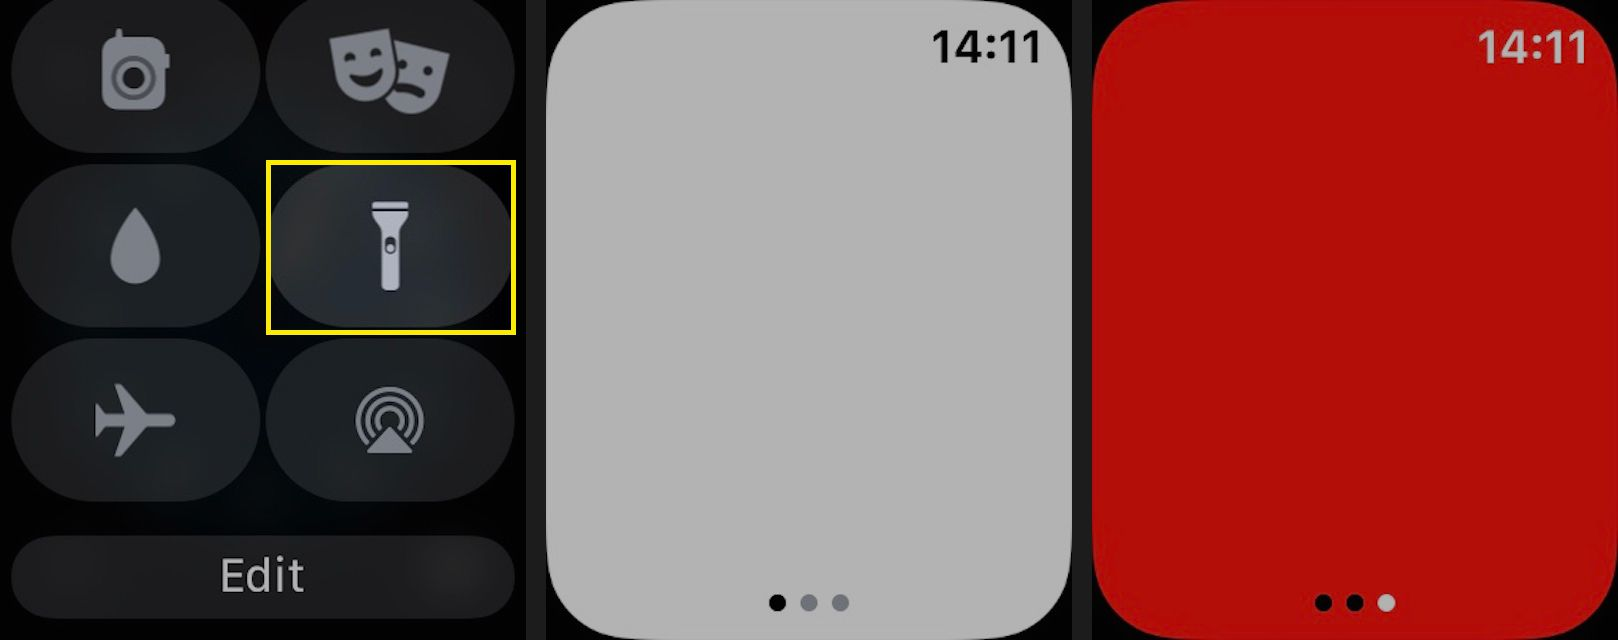 Tap Flashlight to activate the flashlight feature.